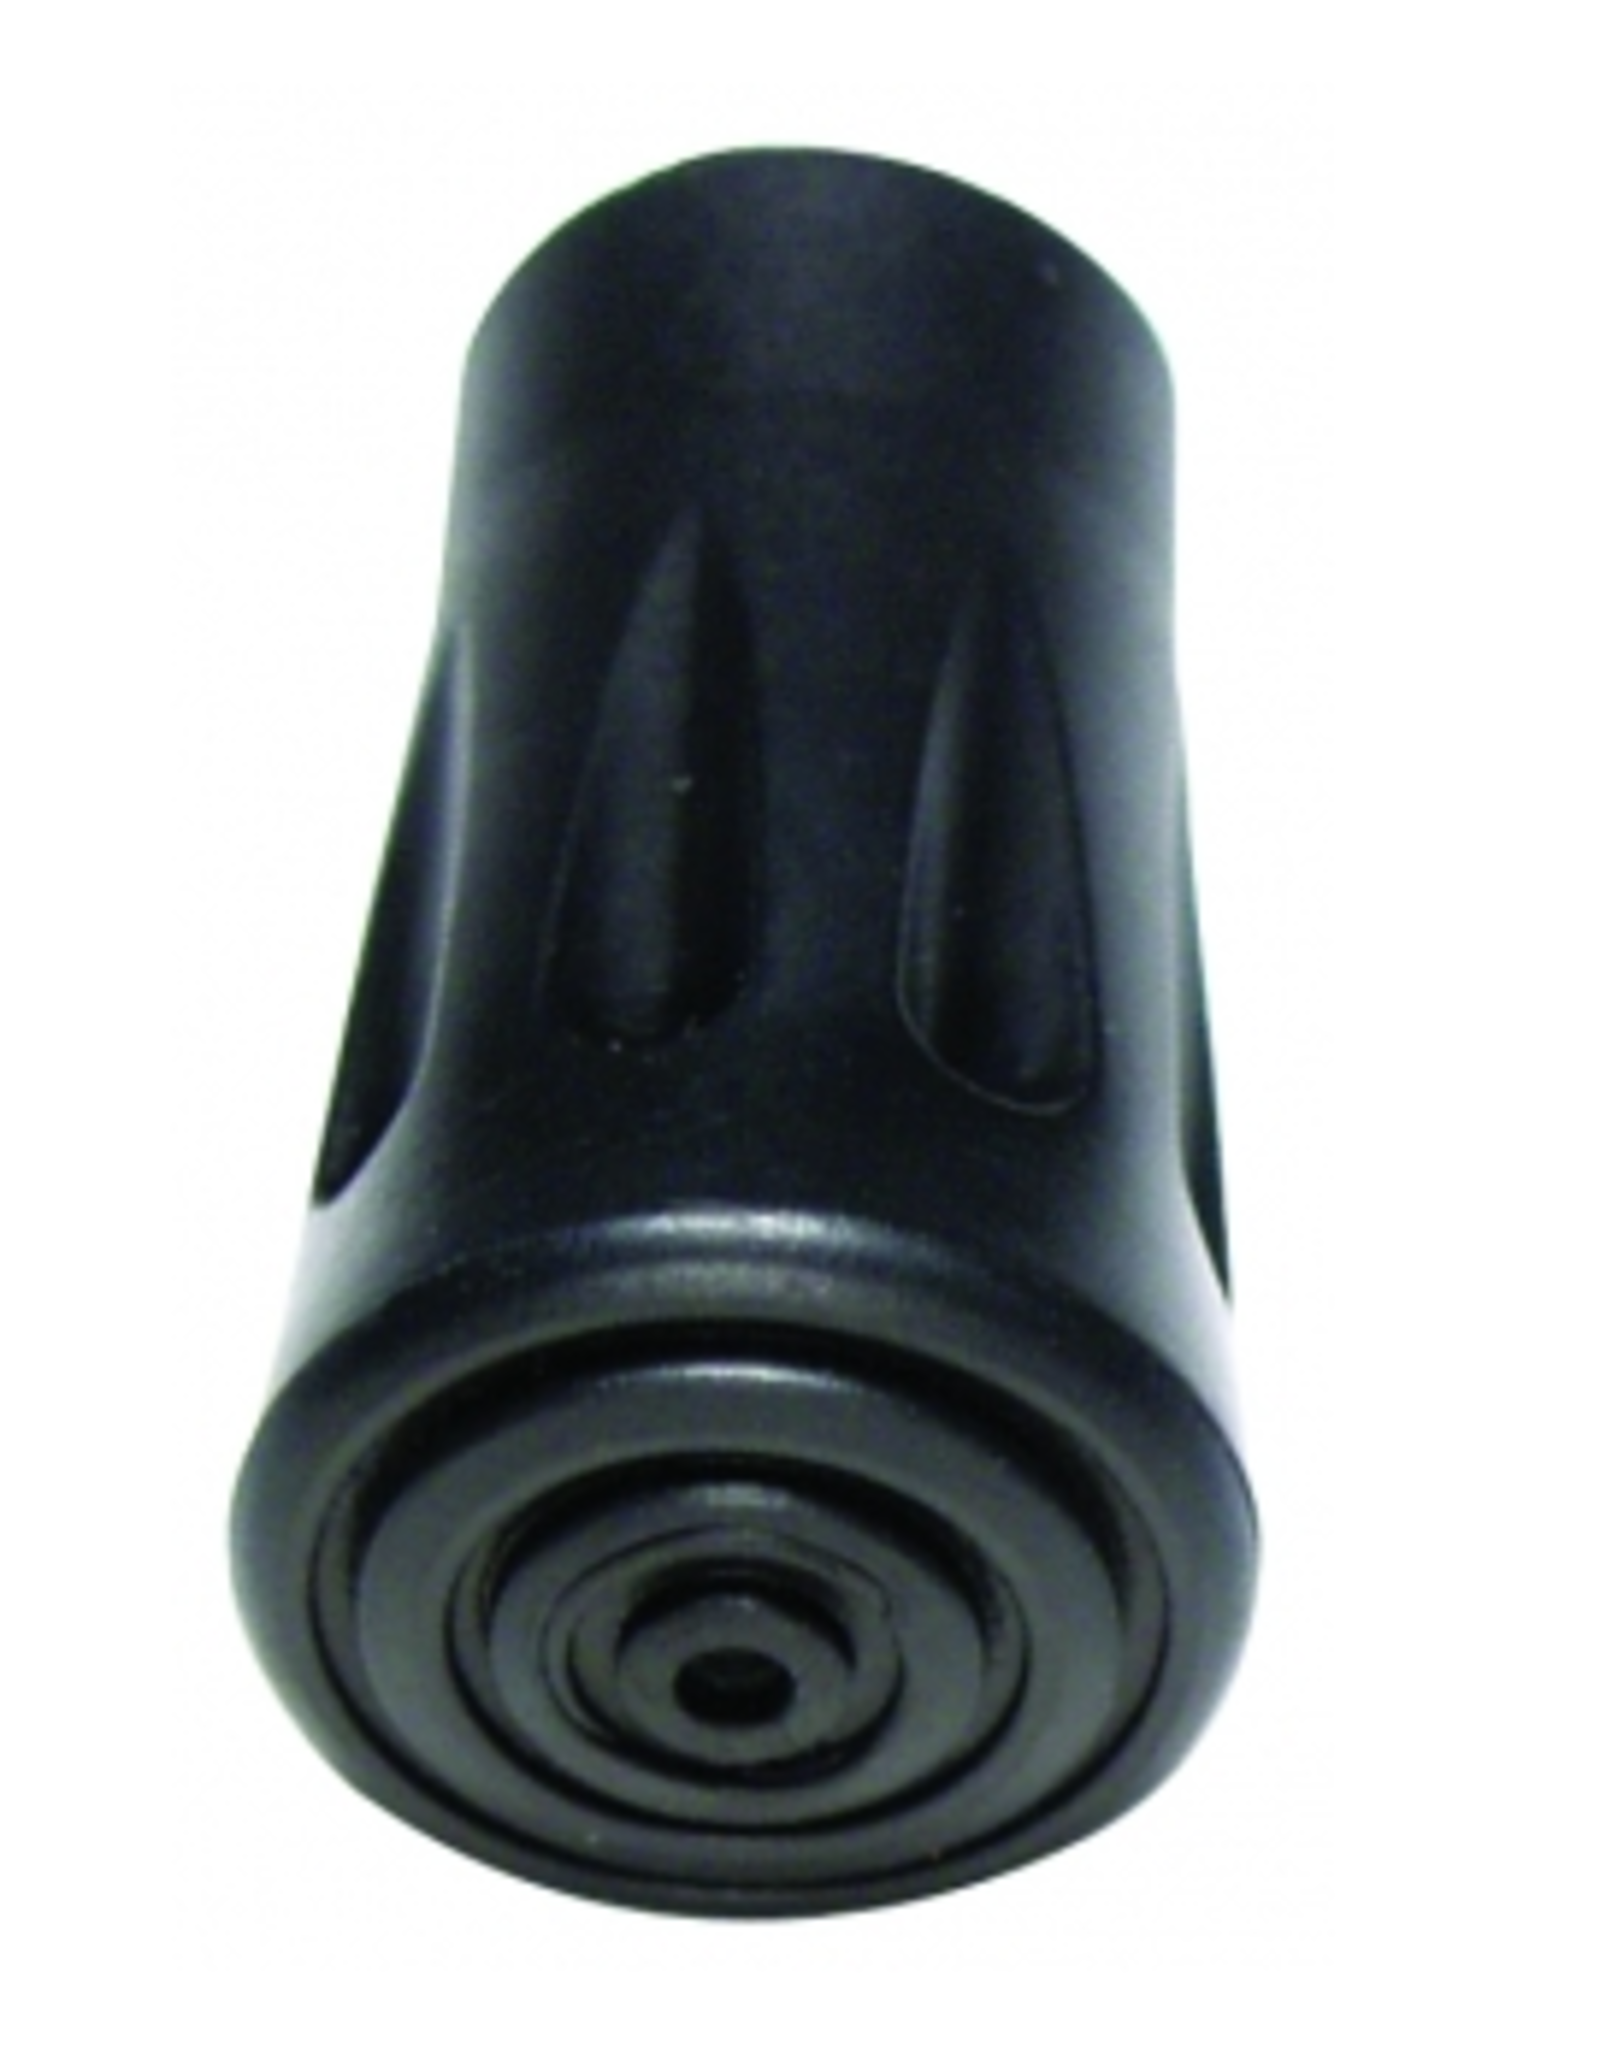 Chinook Chinook Hiking Pole Rubber Tip